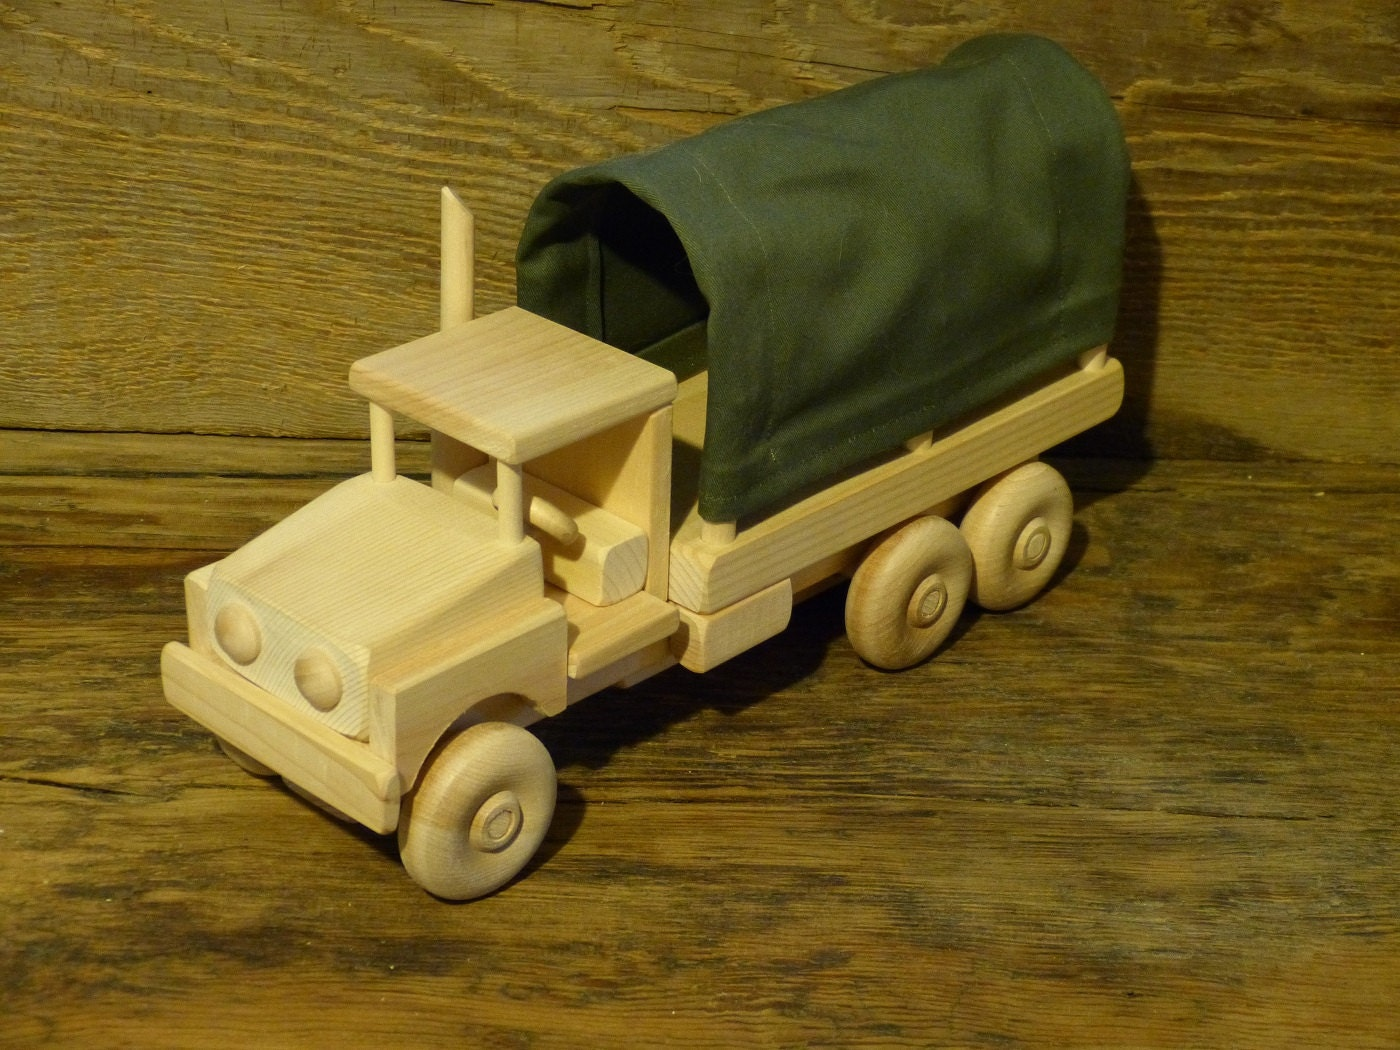 Wooden Toy Trucks : Wood toy truck army wooden toys canopy handmade